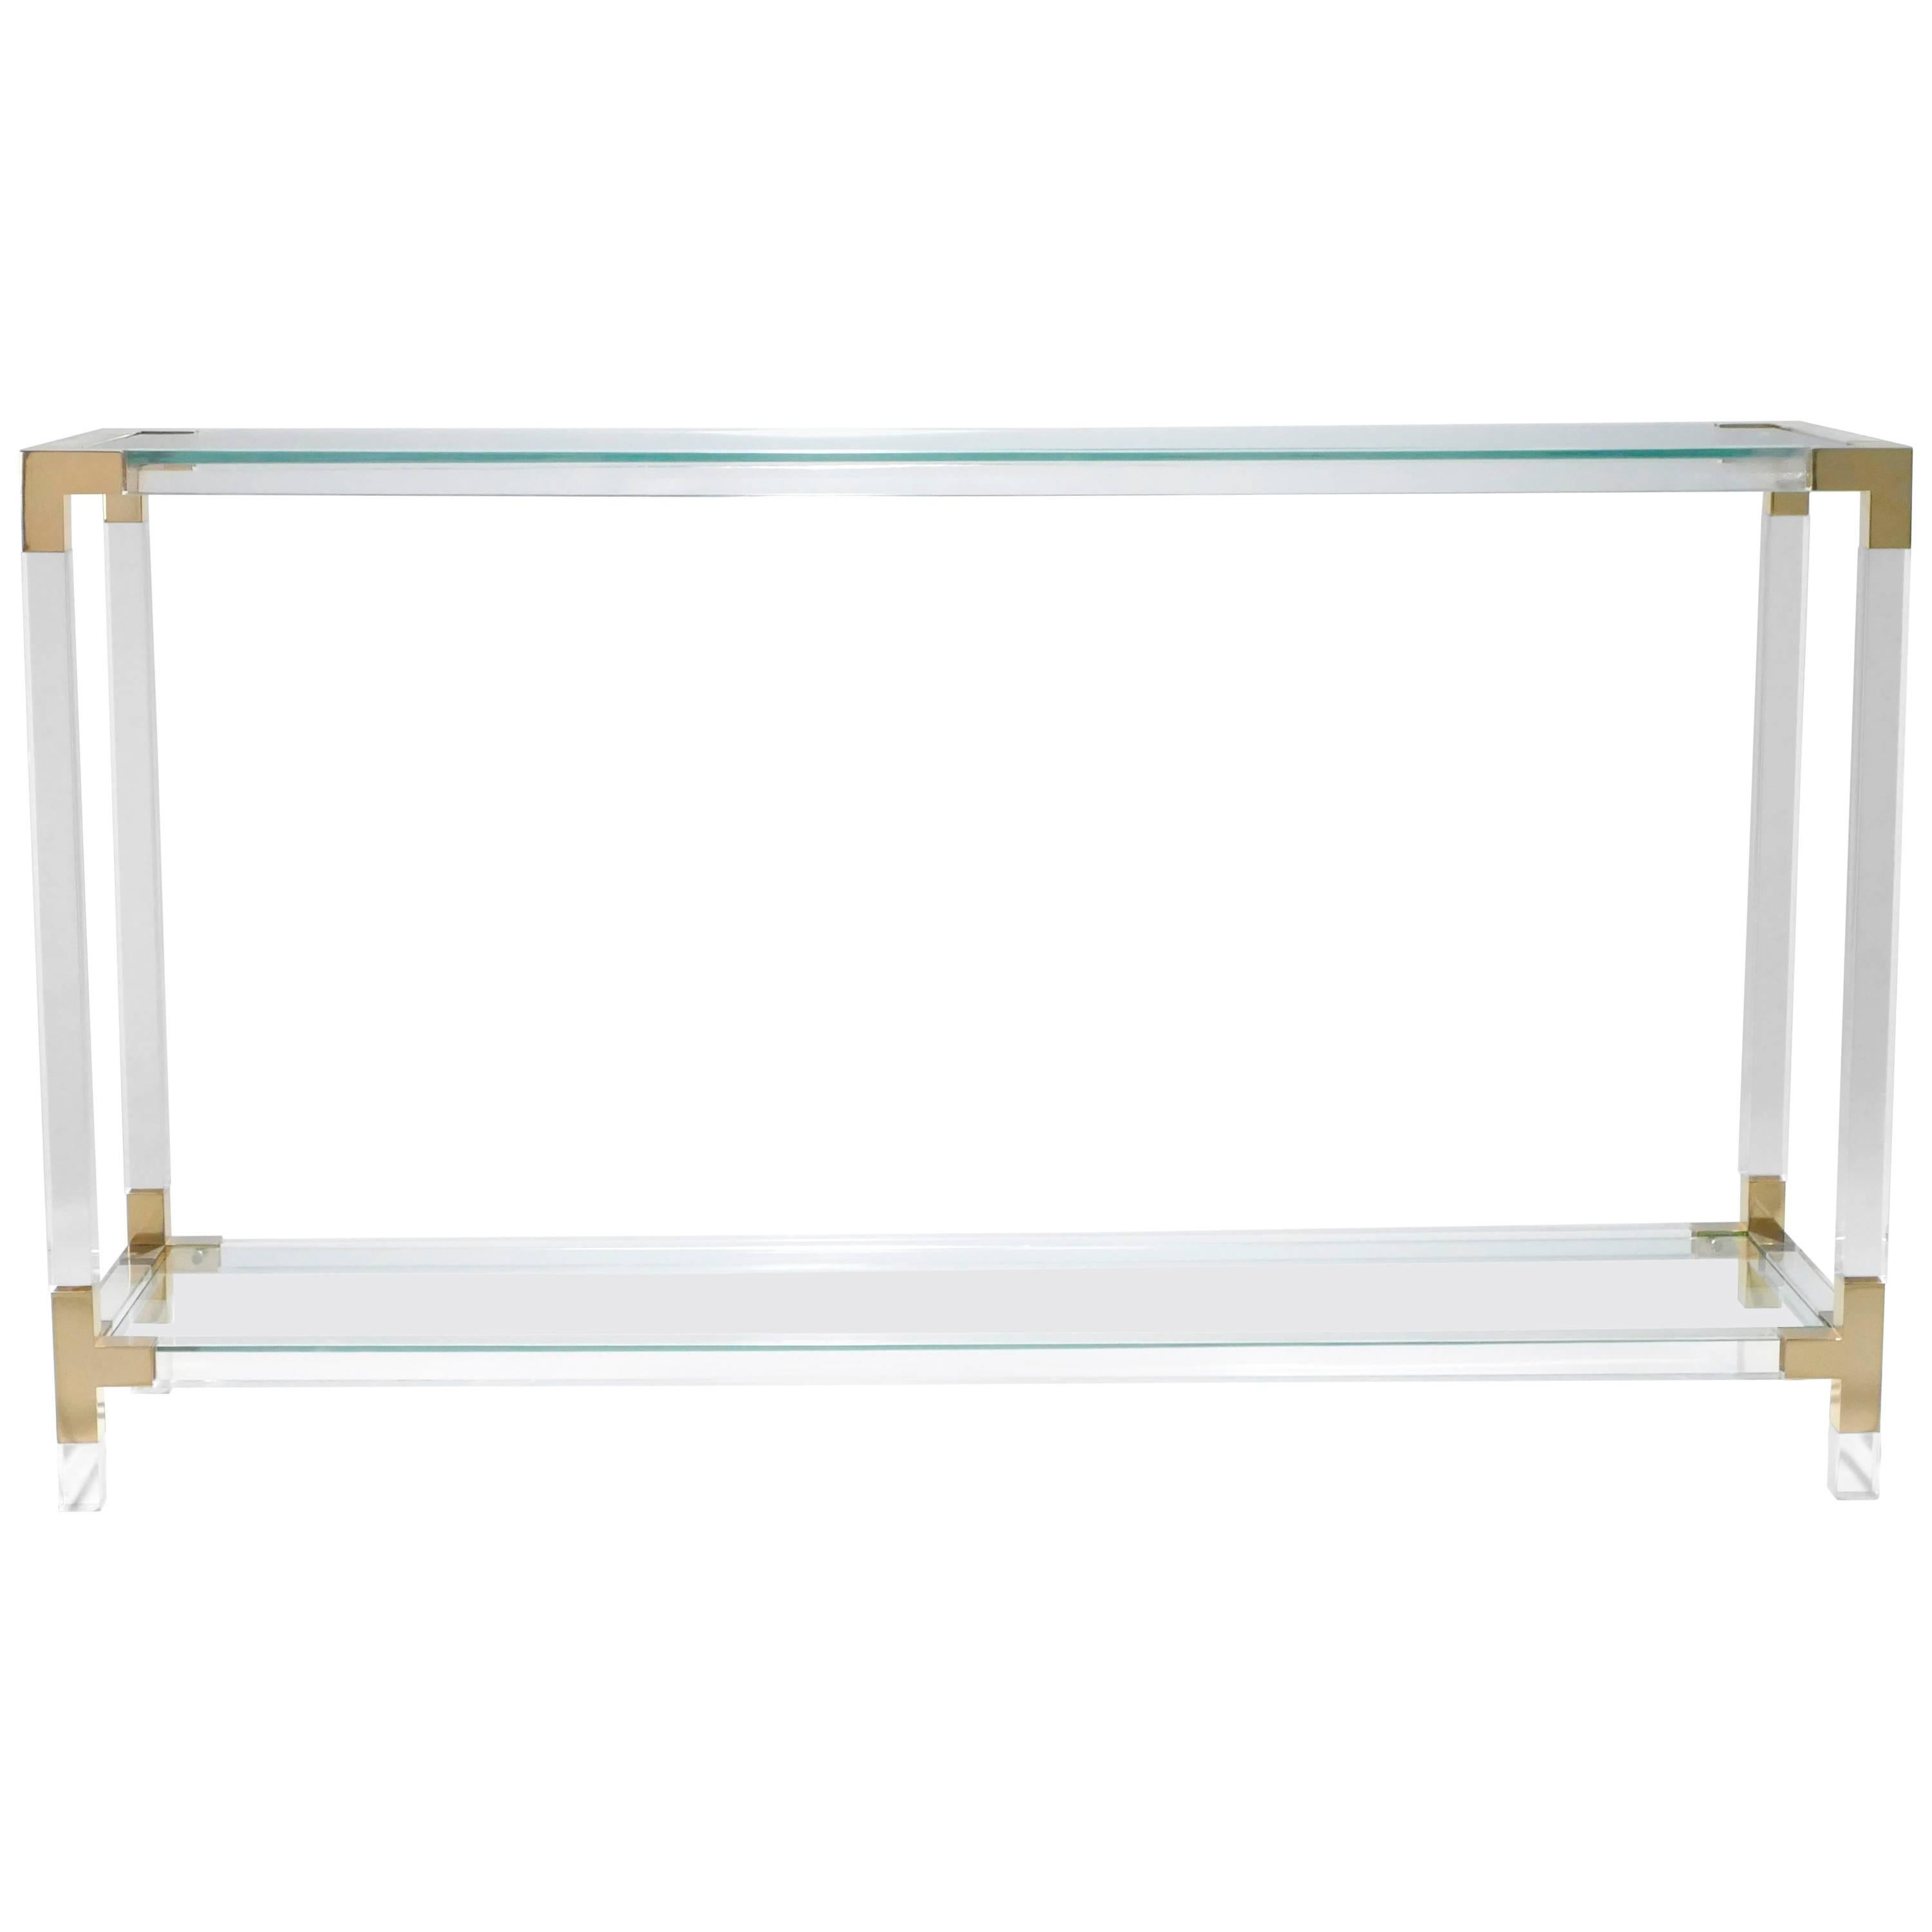 Console Plexiglass Elegant French Vintage S Black Lucite And  # Meuble Tv Plexiglas